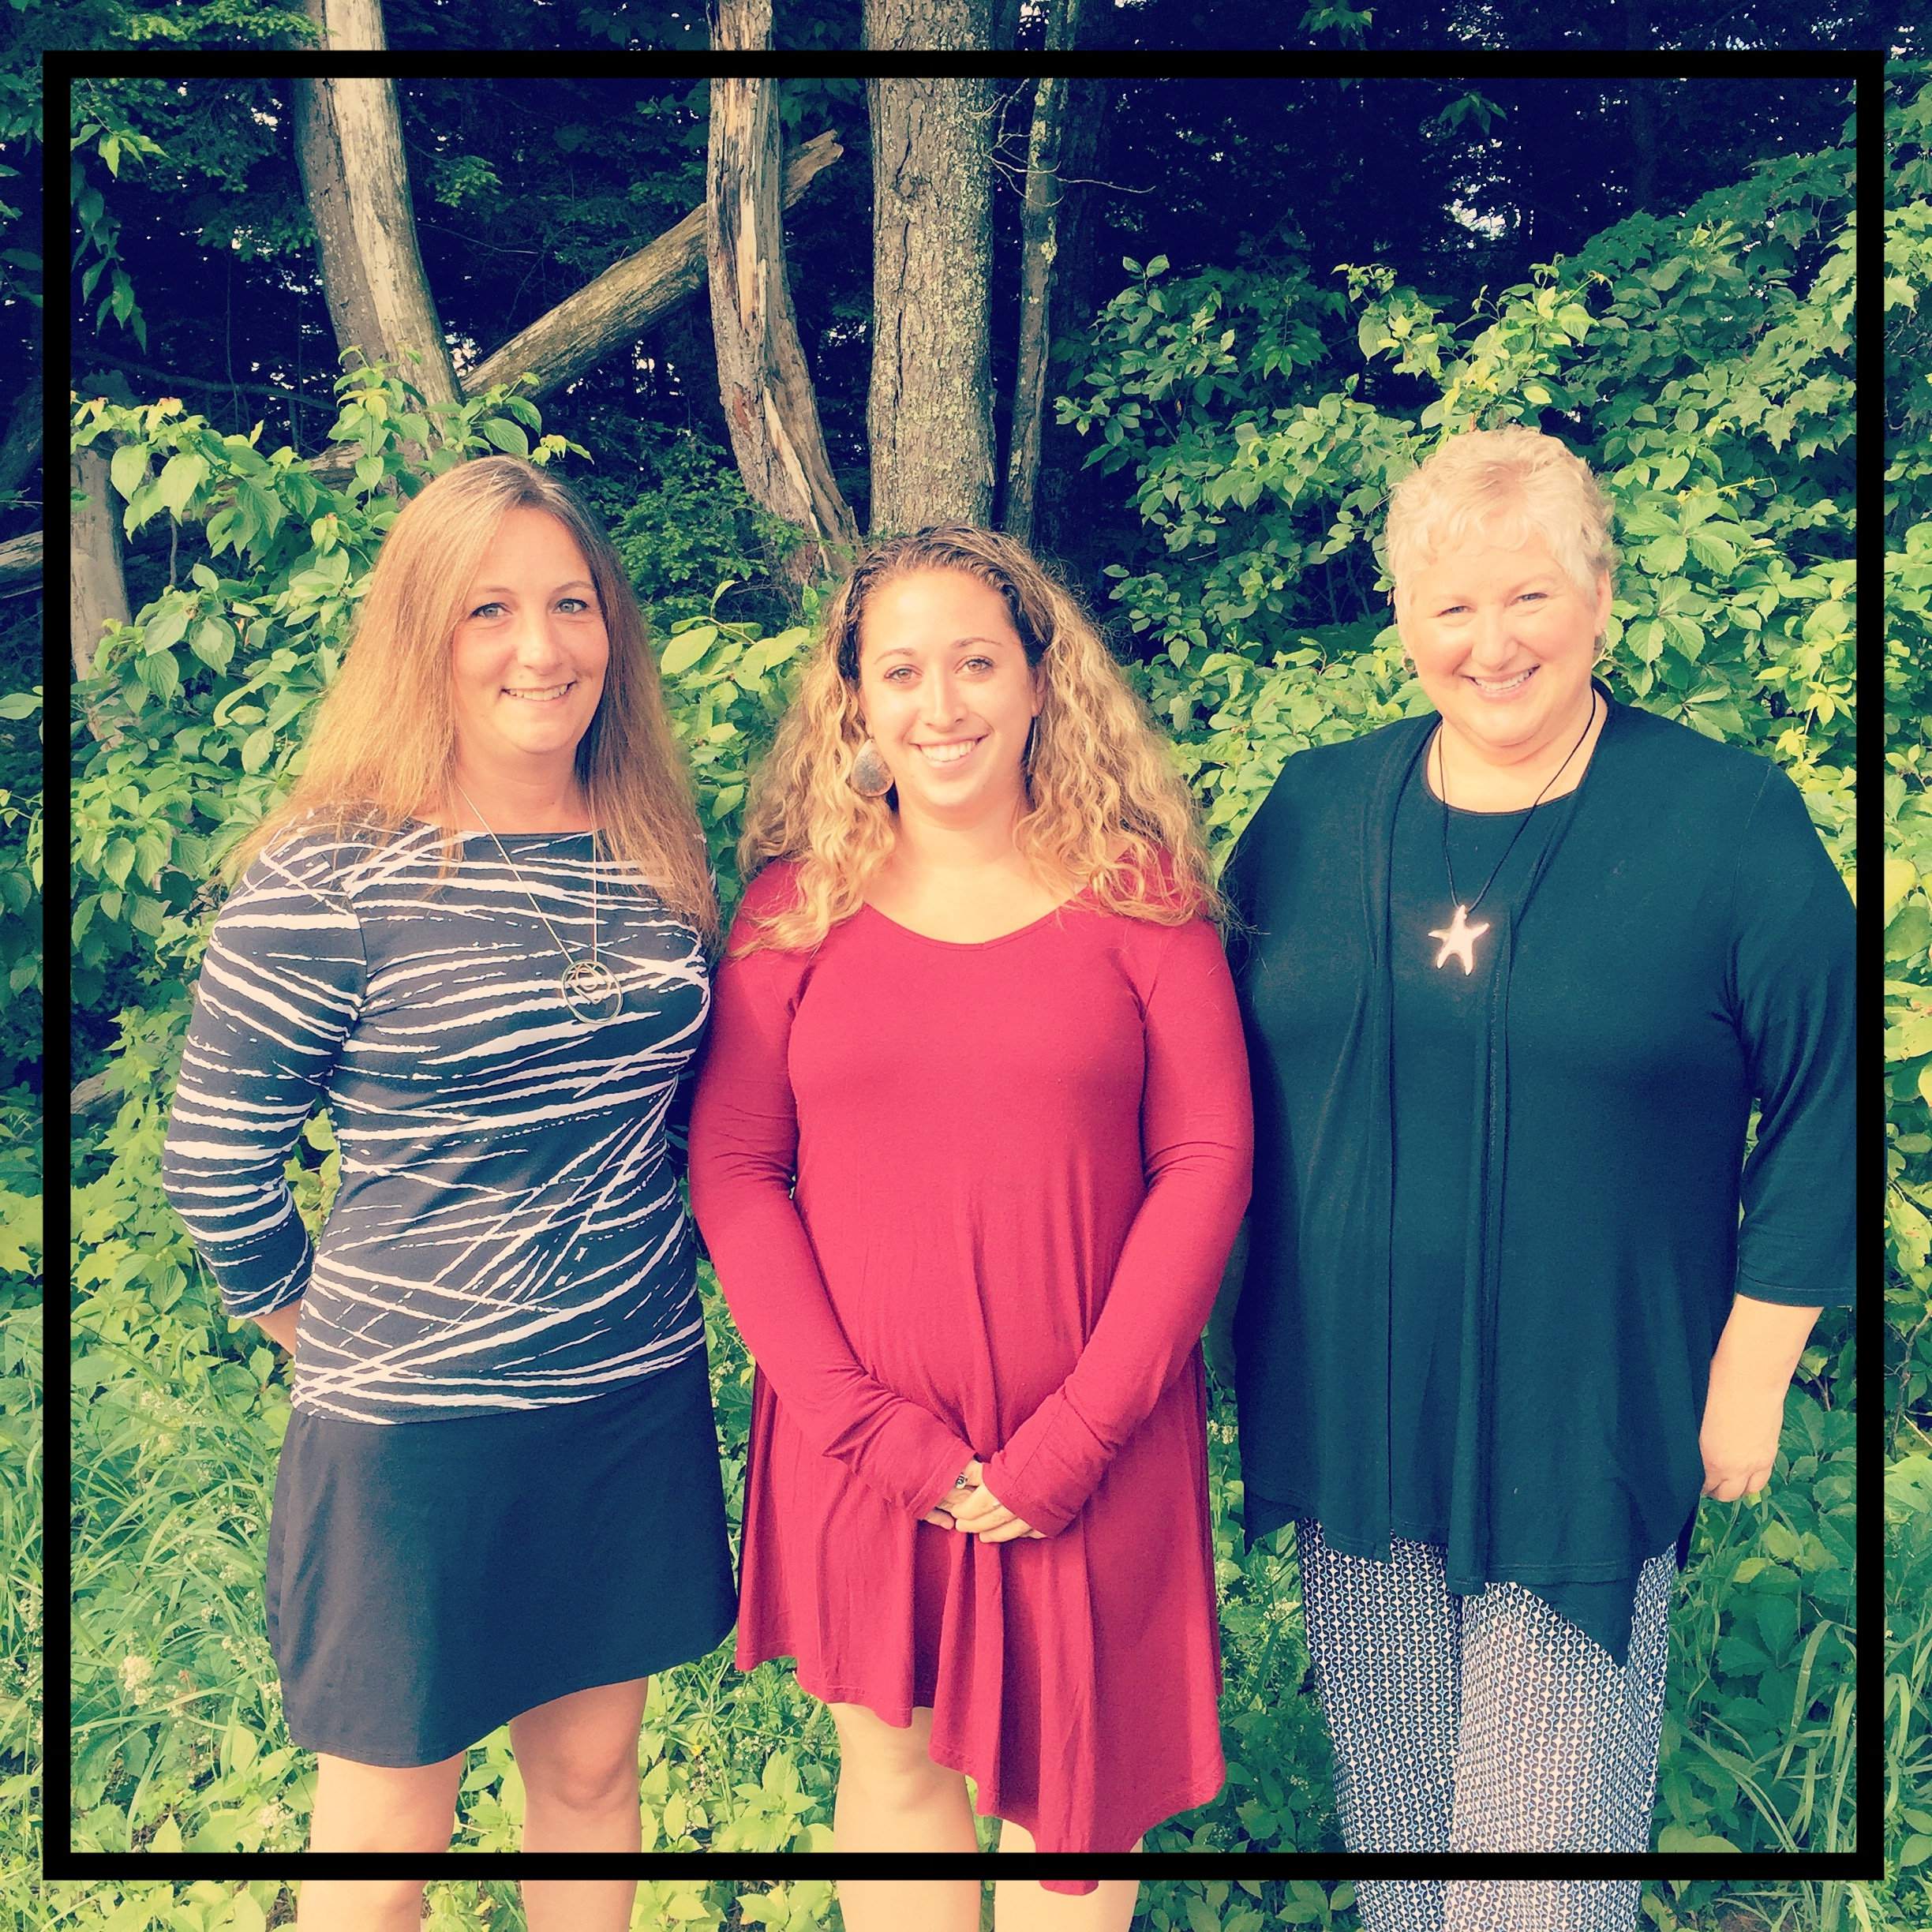 (Left to Right: Michelle French, Chelsea Miller, Andrea Mayo)